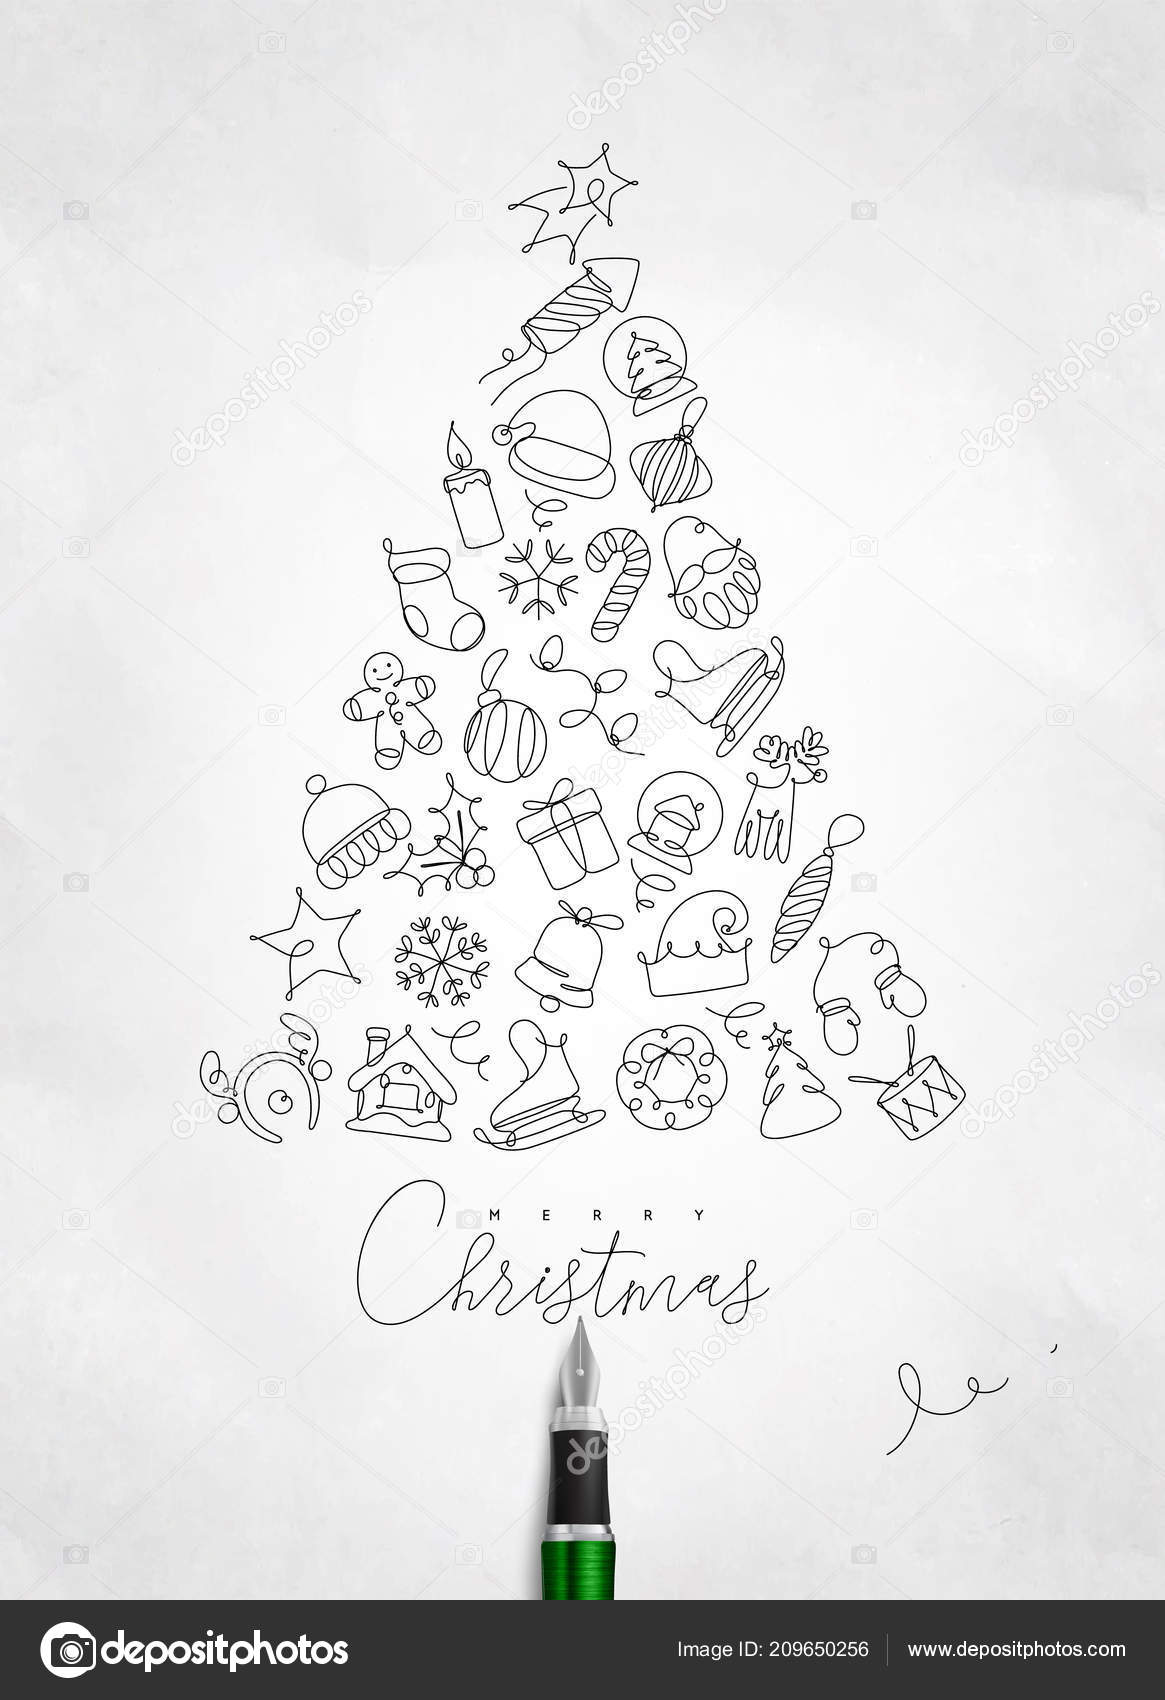 Christmas Toy Tree Drawing Pen Line Crumpled Paper Background Vector Image By C Anna42f Vector Stock 209650256